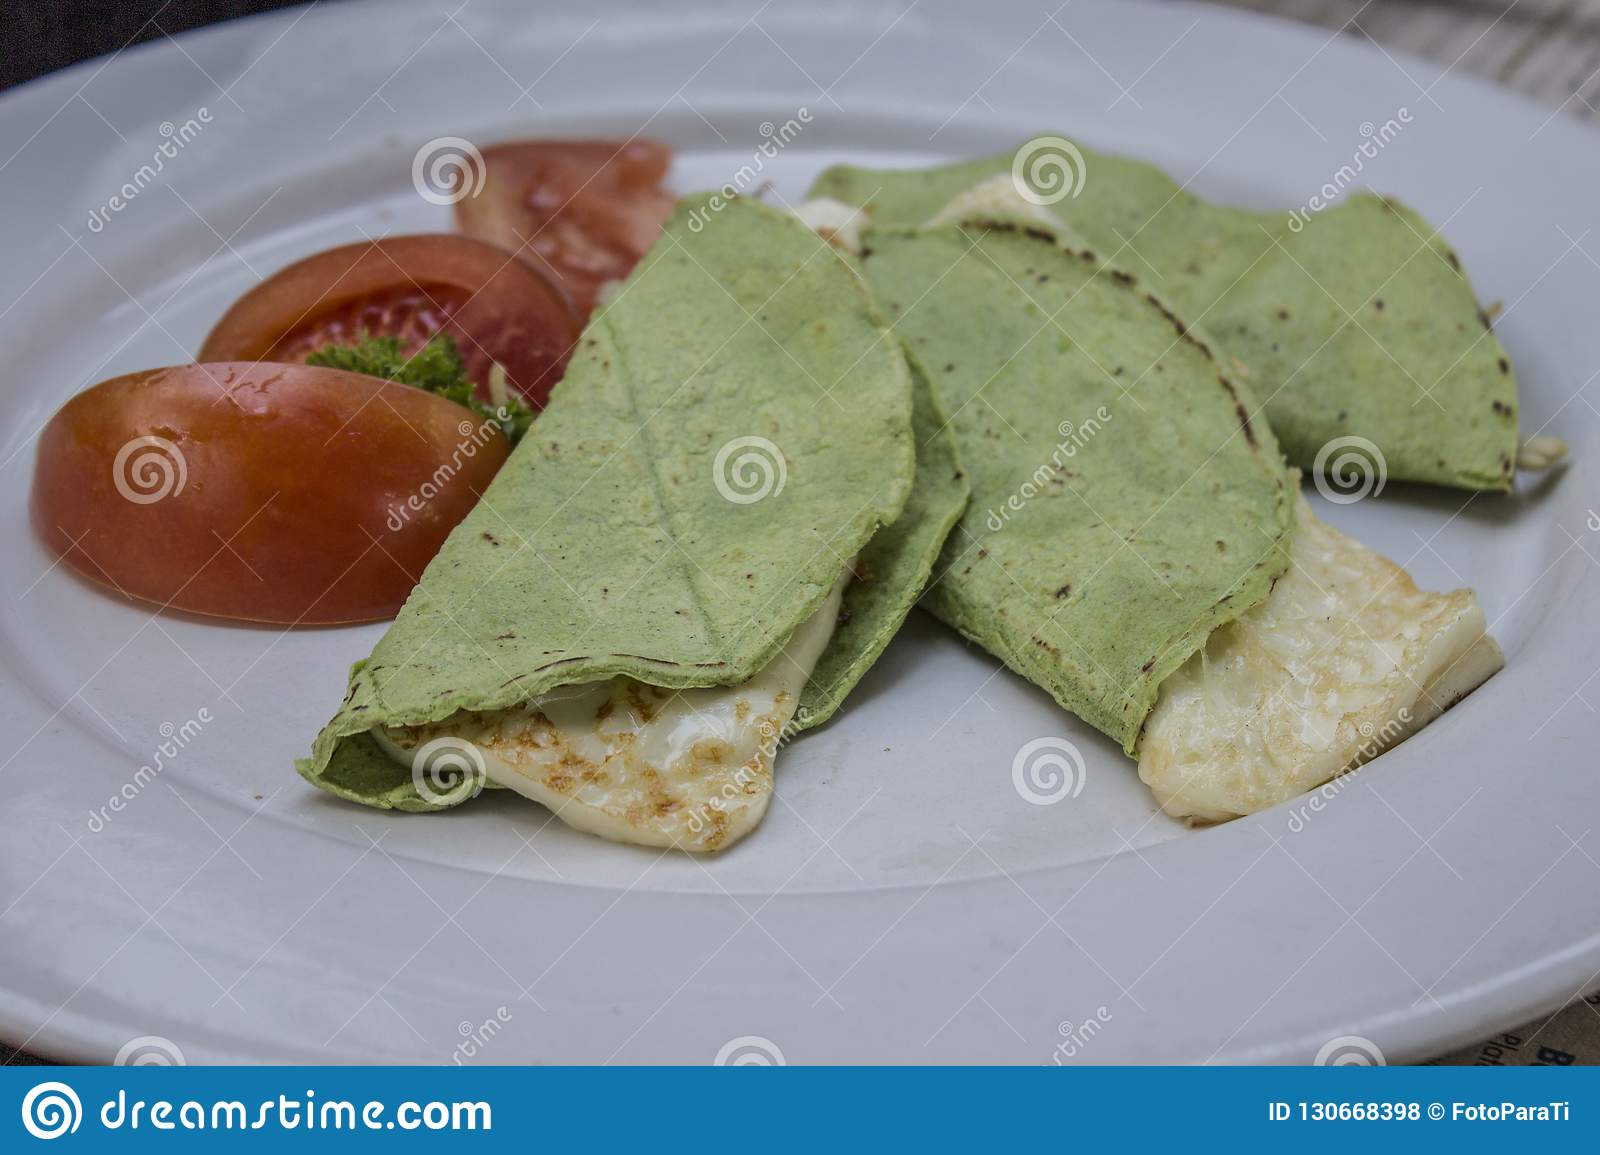 Quesadillas with green tortilla with panela cheese